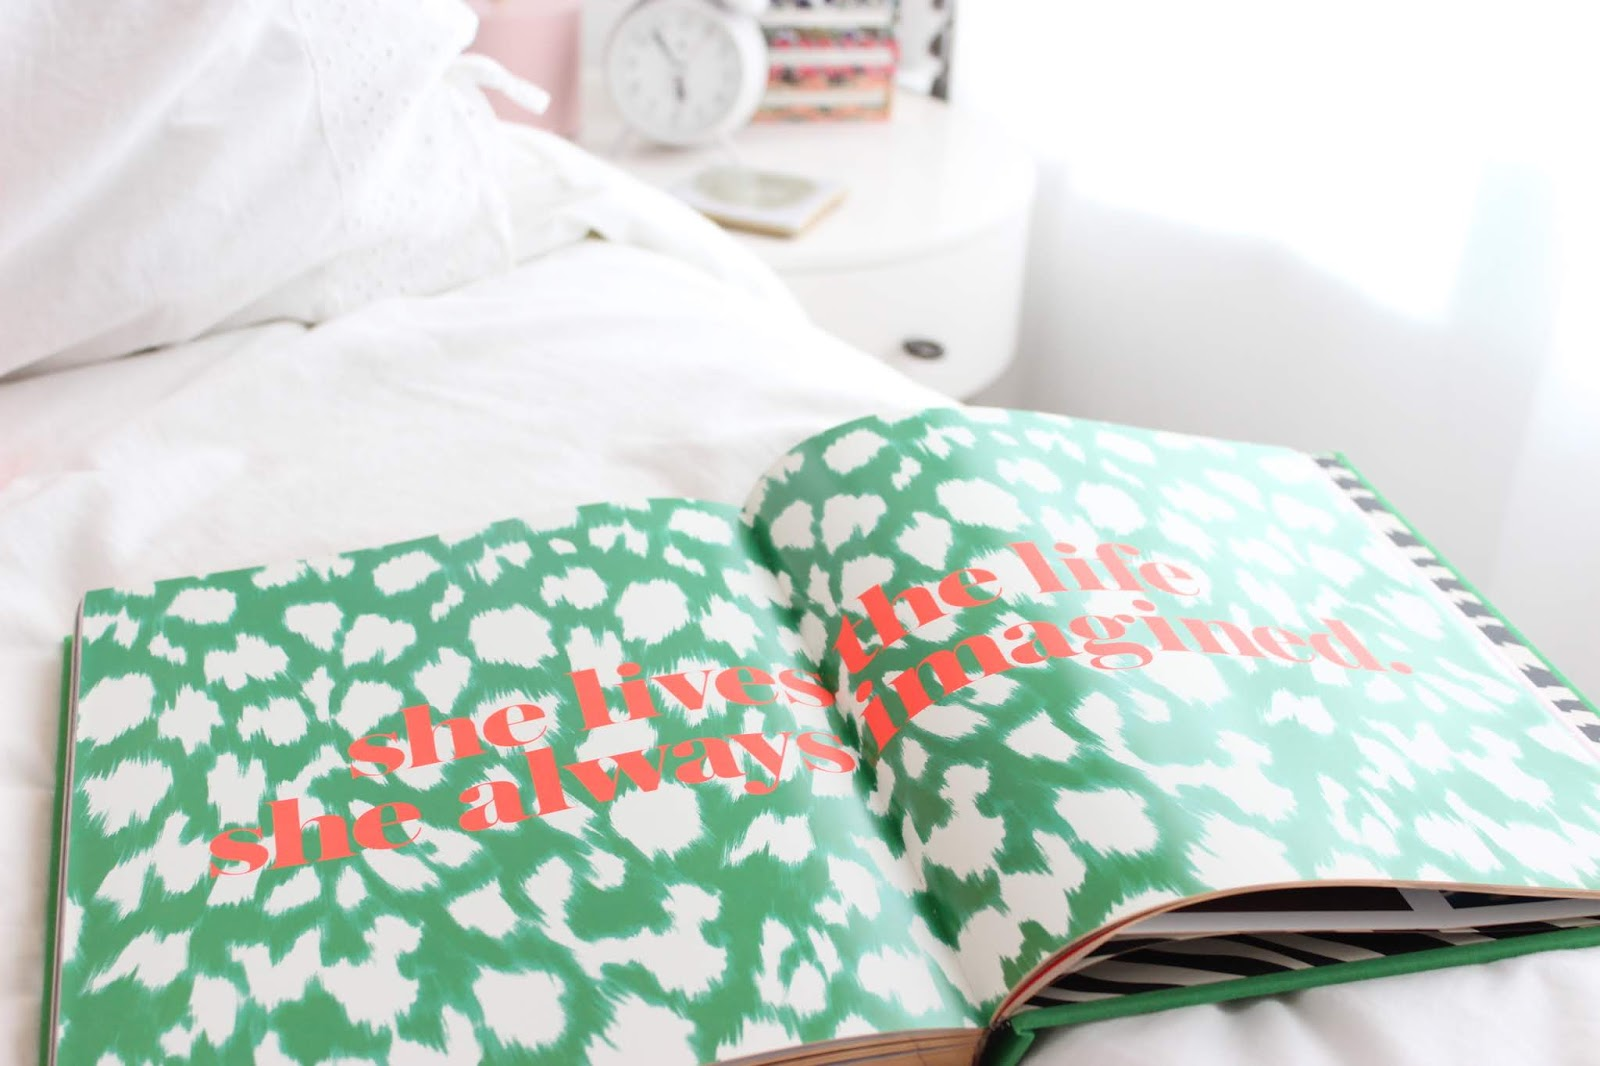 Kate spade, what Kate spade meant to me,